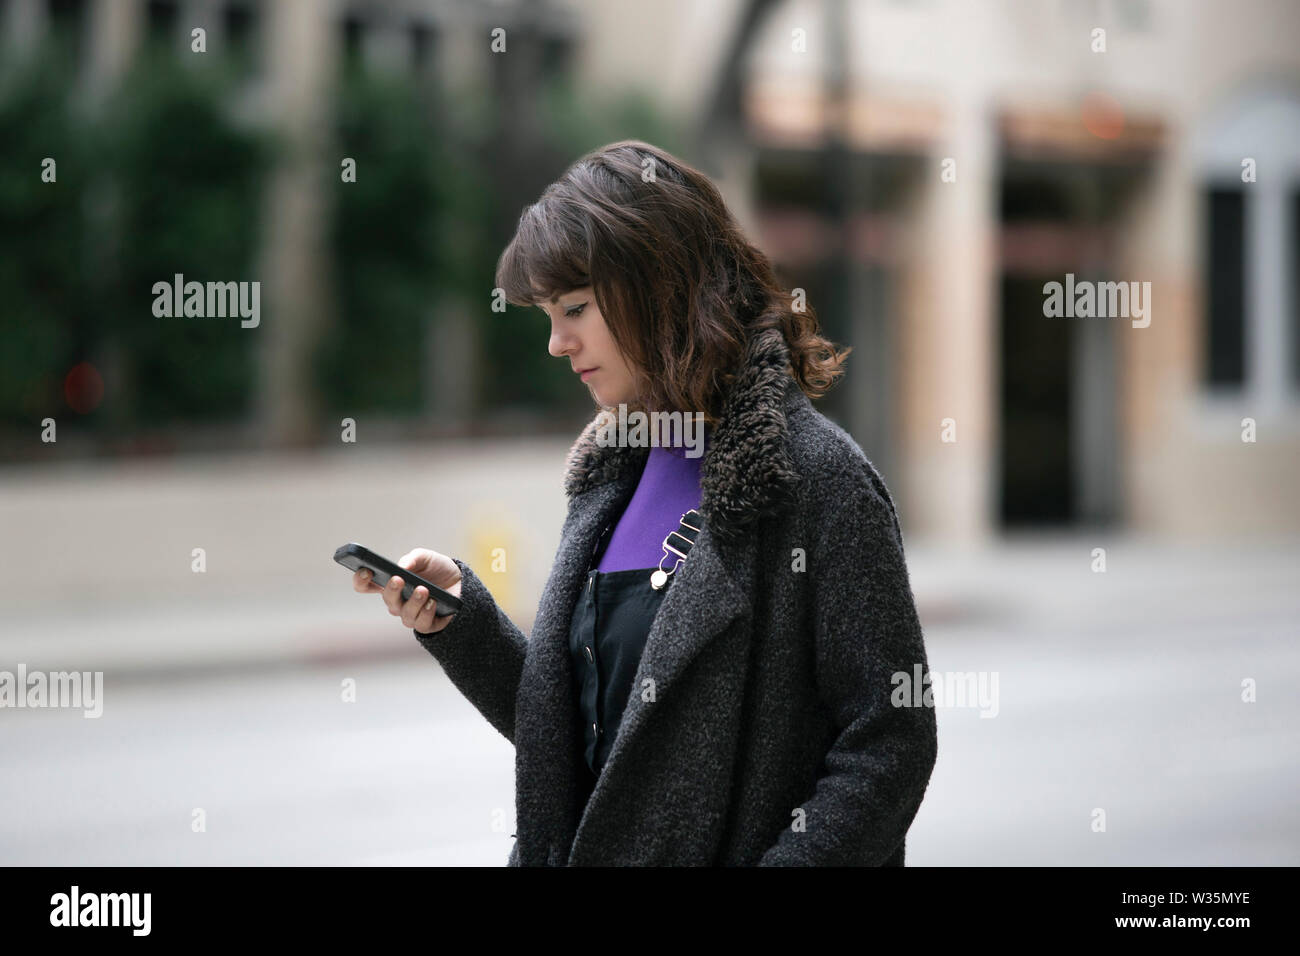 Young female using mobile phone app and waiting for a rideshare or pedestrian tourist checking online map for gps navigation.  Depicts city life and h Stock Photo